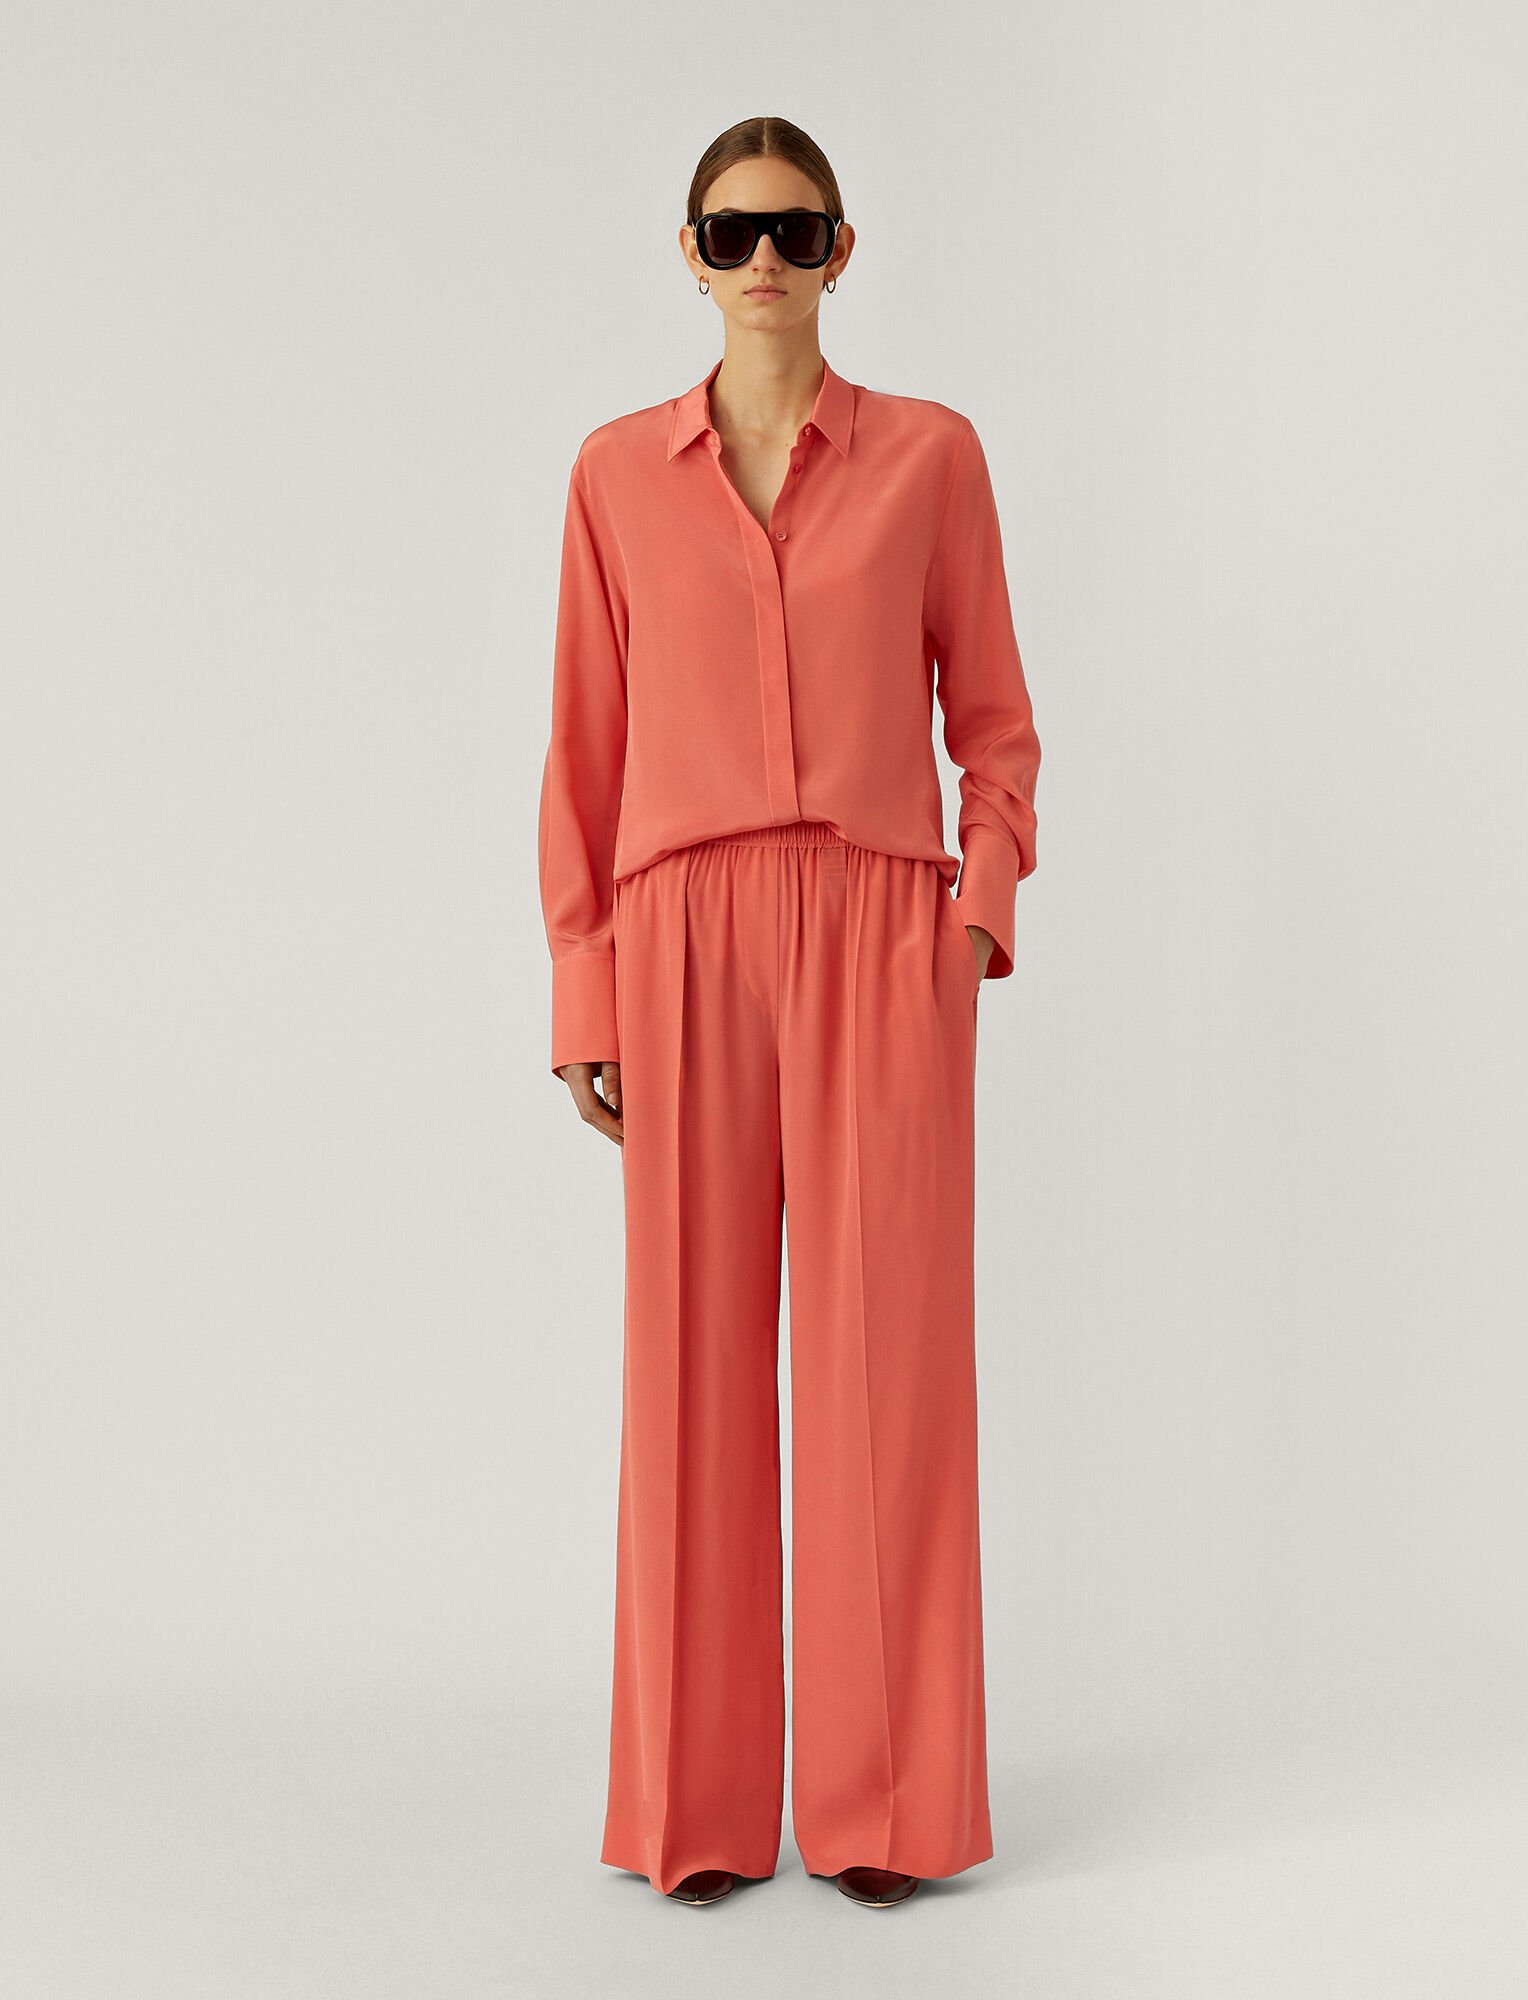 Joseph, Taffy Crepe De Chine Trousers, in Peony